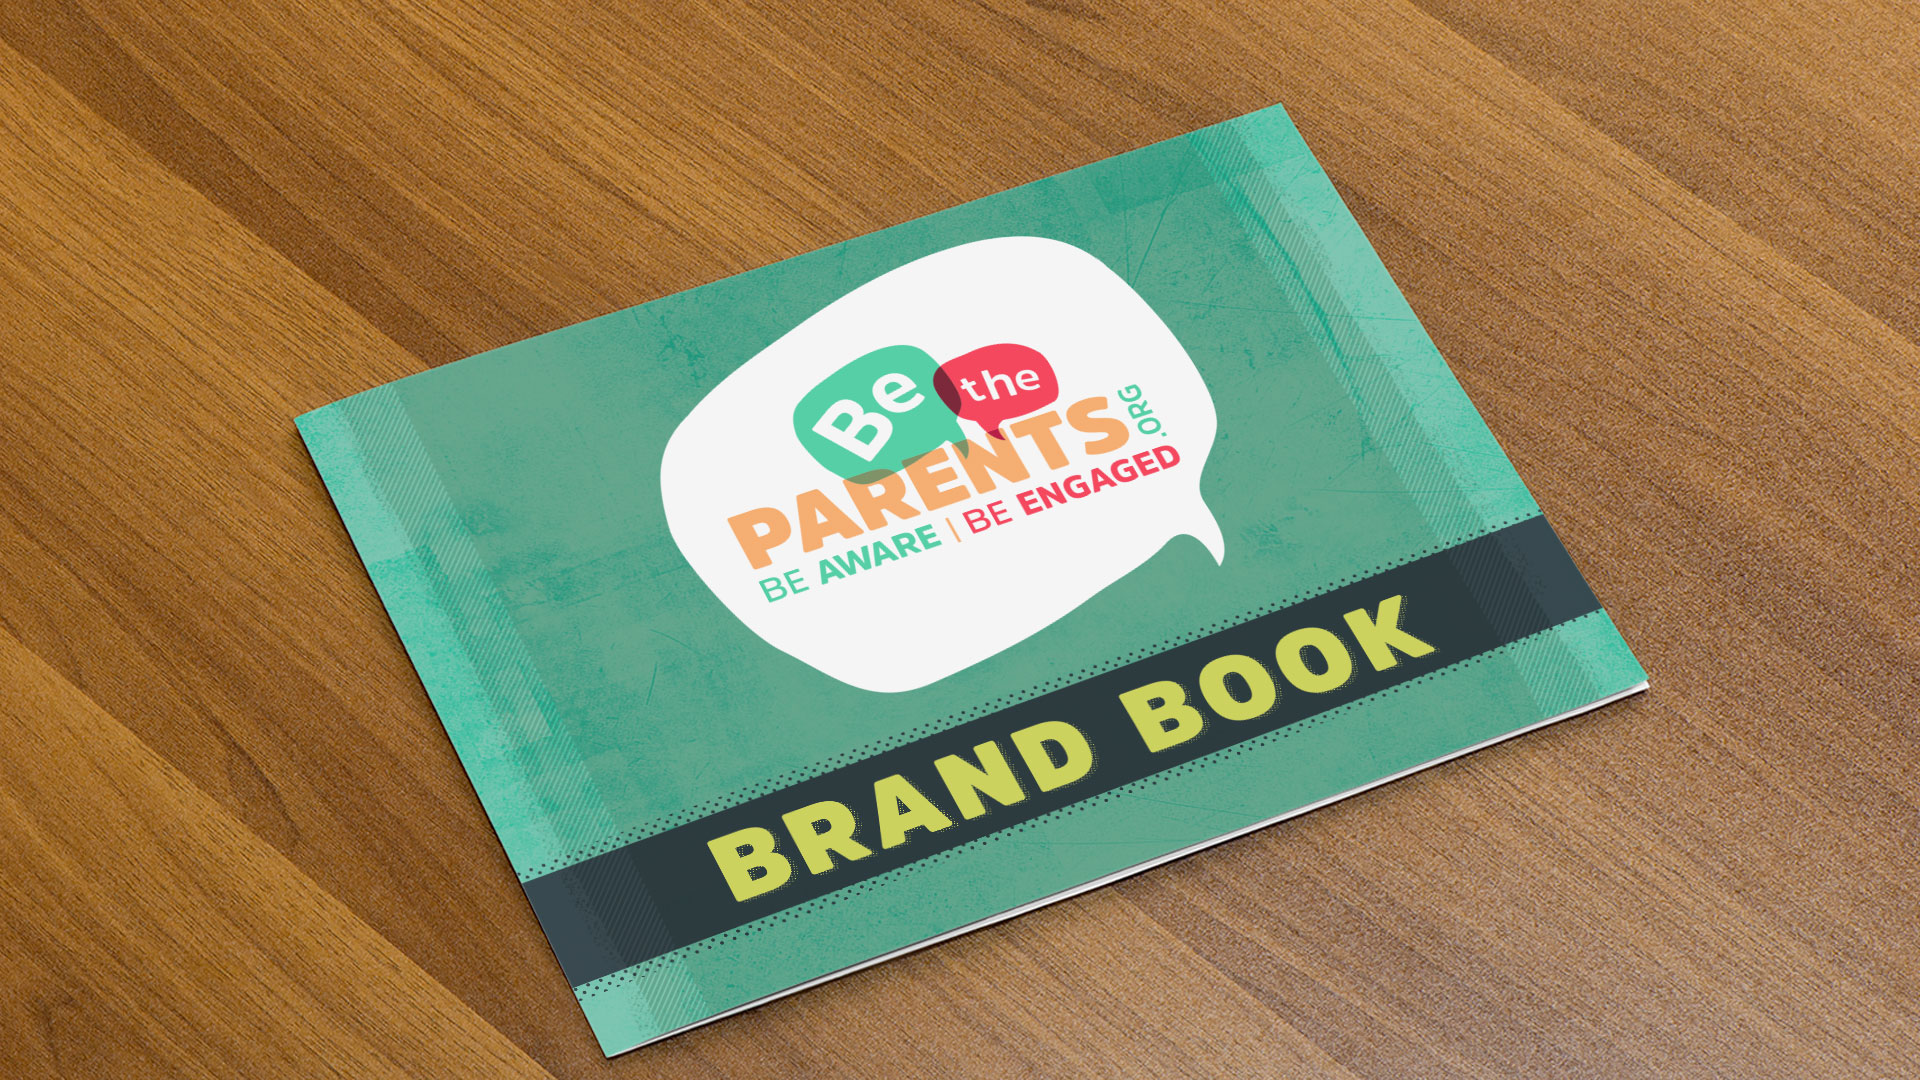 Be The Parents brand book